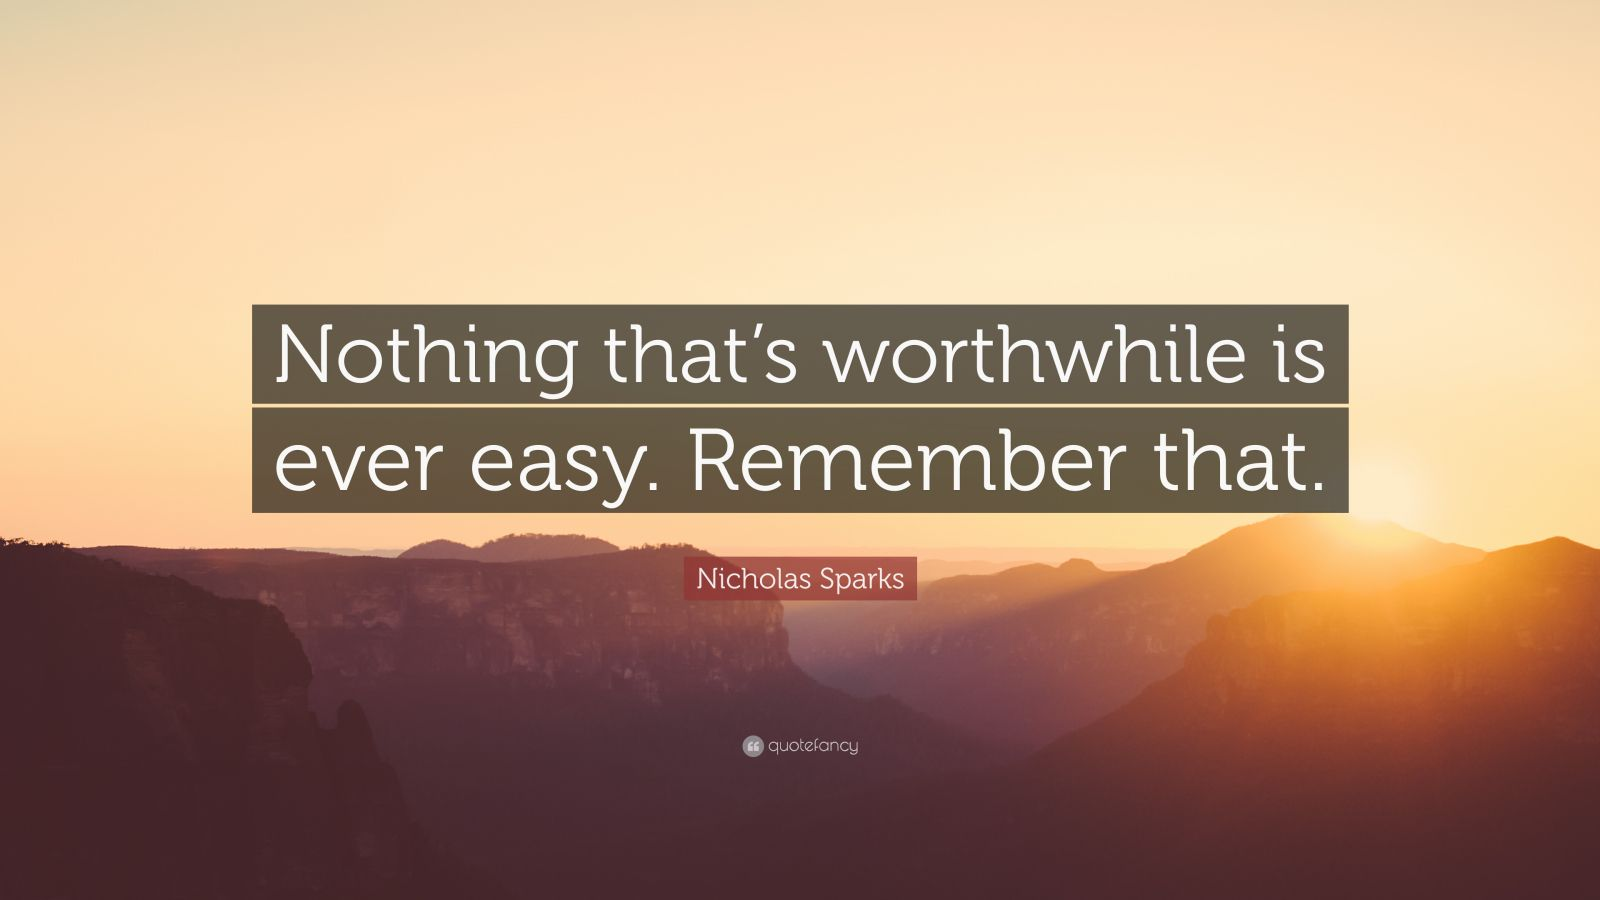 Nicholas Sparks Quote Nothing That S Worthwhile Is Ever Easy